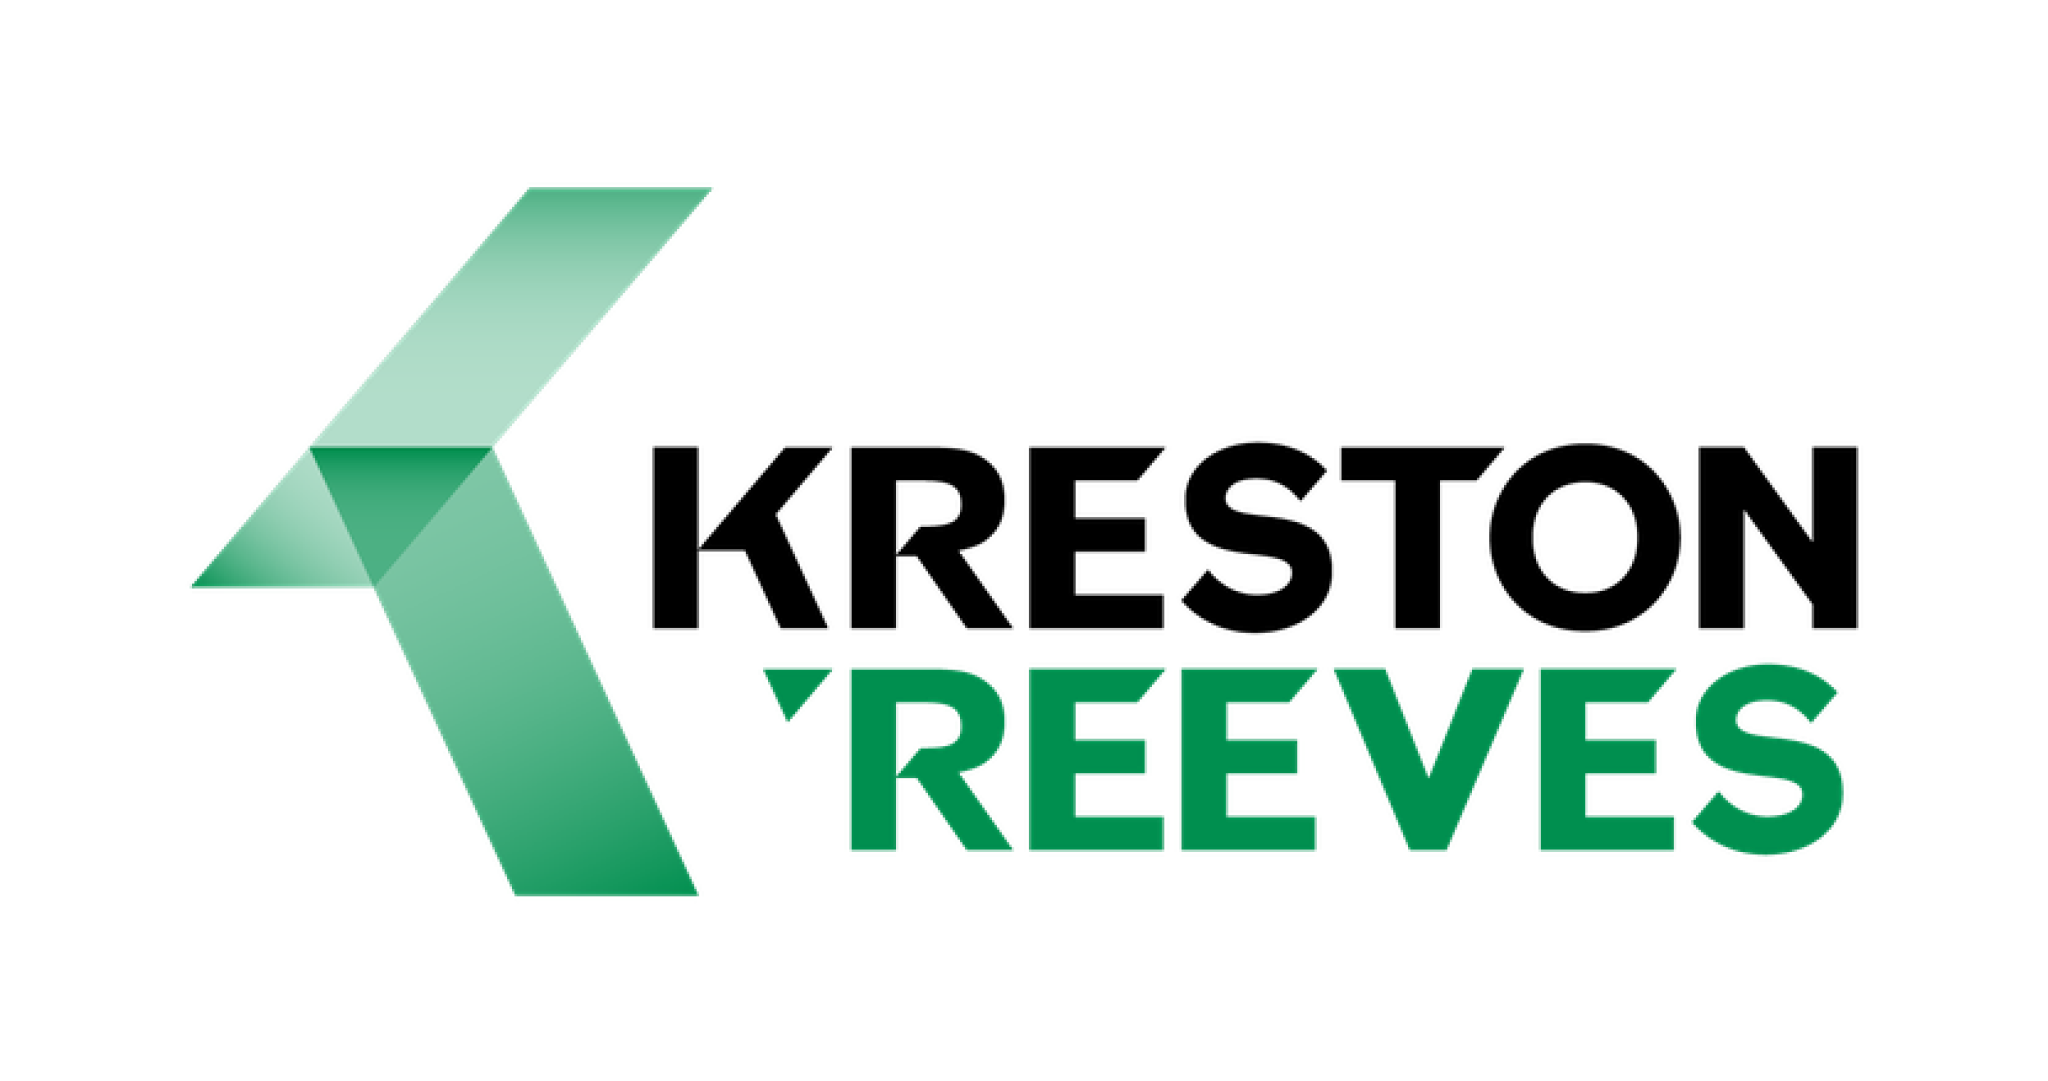 Kreston_Reeves_Logo.png